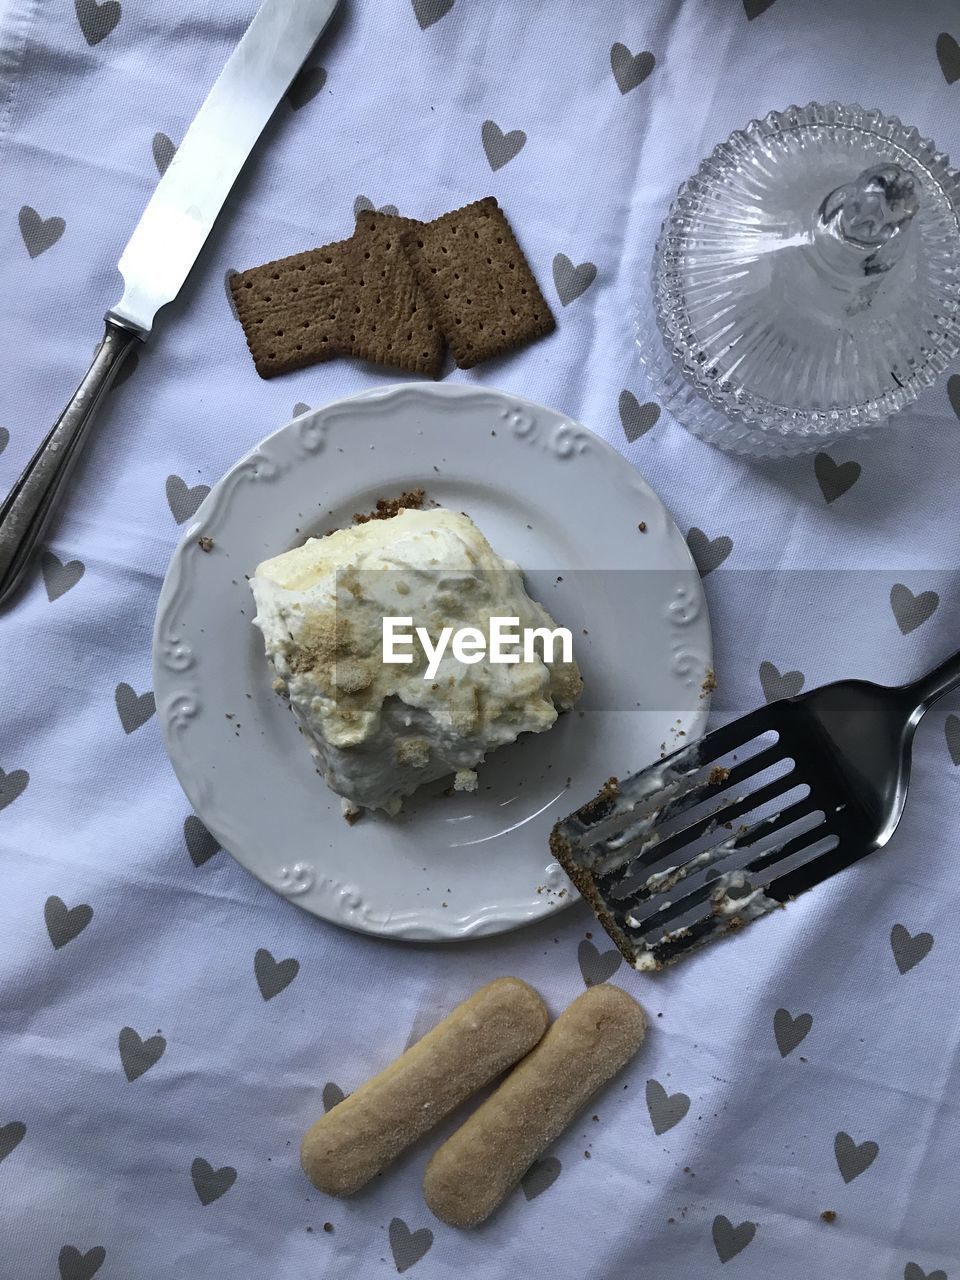 food, food and drink, eating utensil, kitchen utensil, fork, plate, freshness, table, ready-to-eat, high angle view, sweet, dessert, still life, sweet food, no people, indoors, indulgence, knife, dairy product, household equipment, temptation, table knife